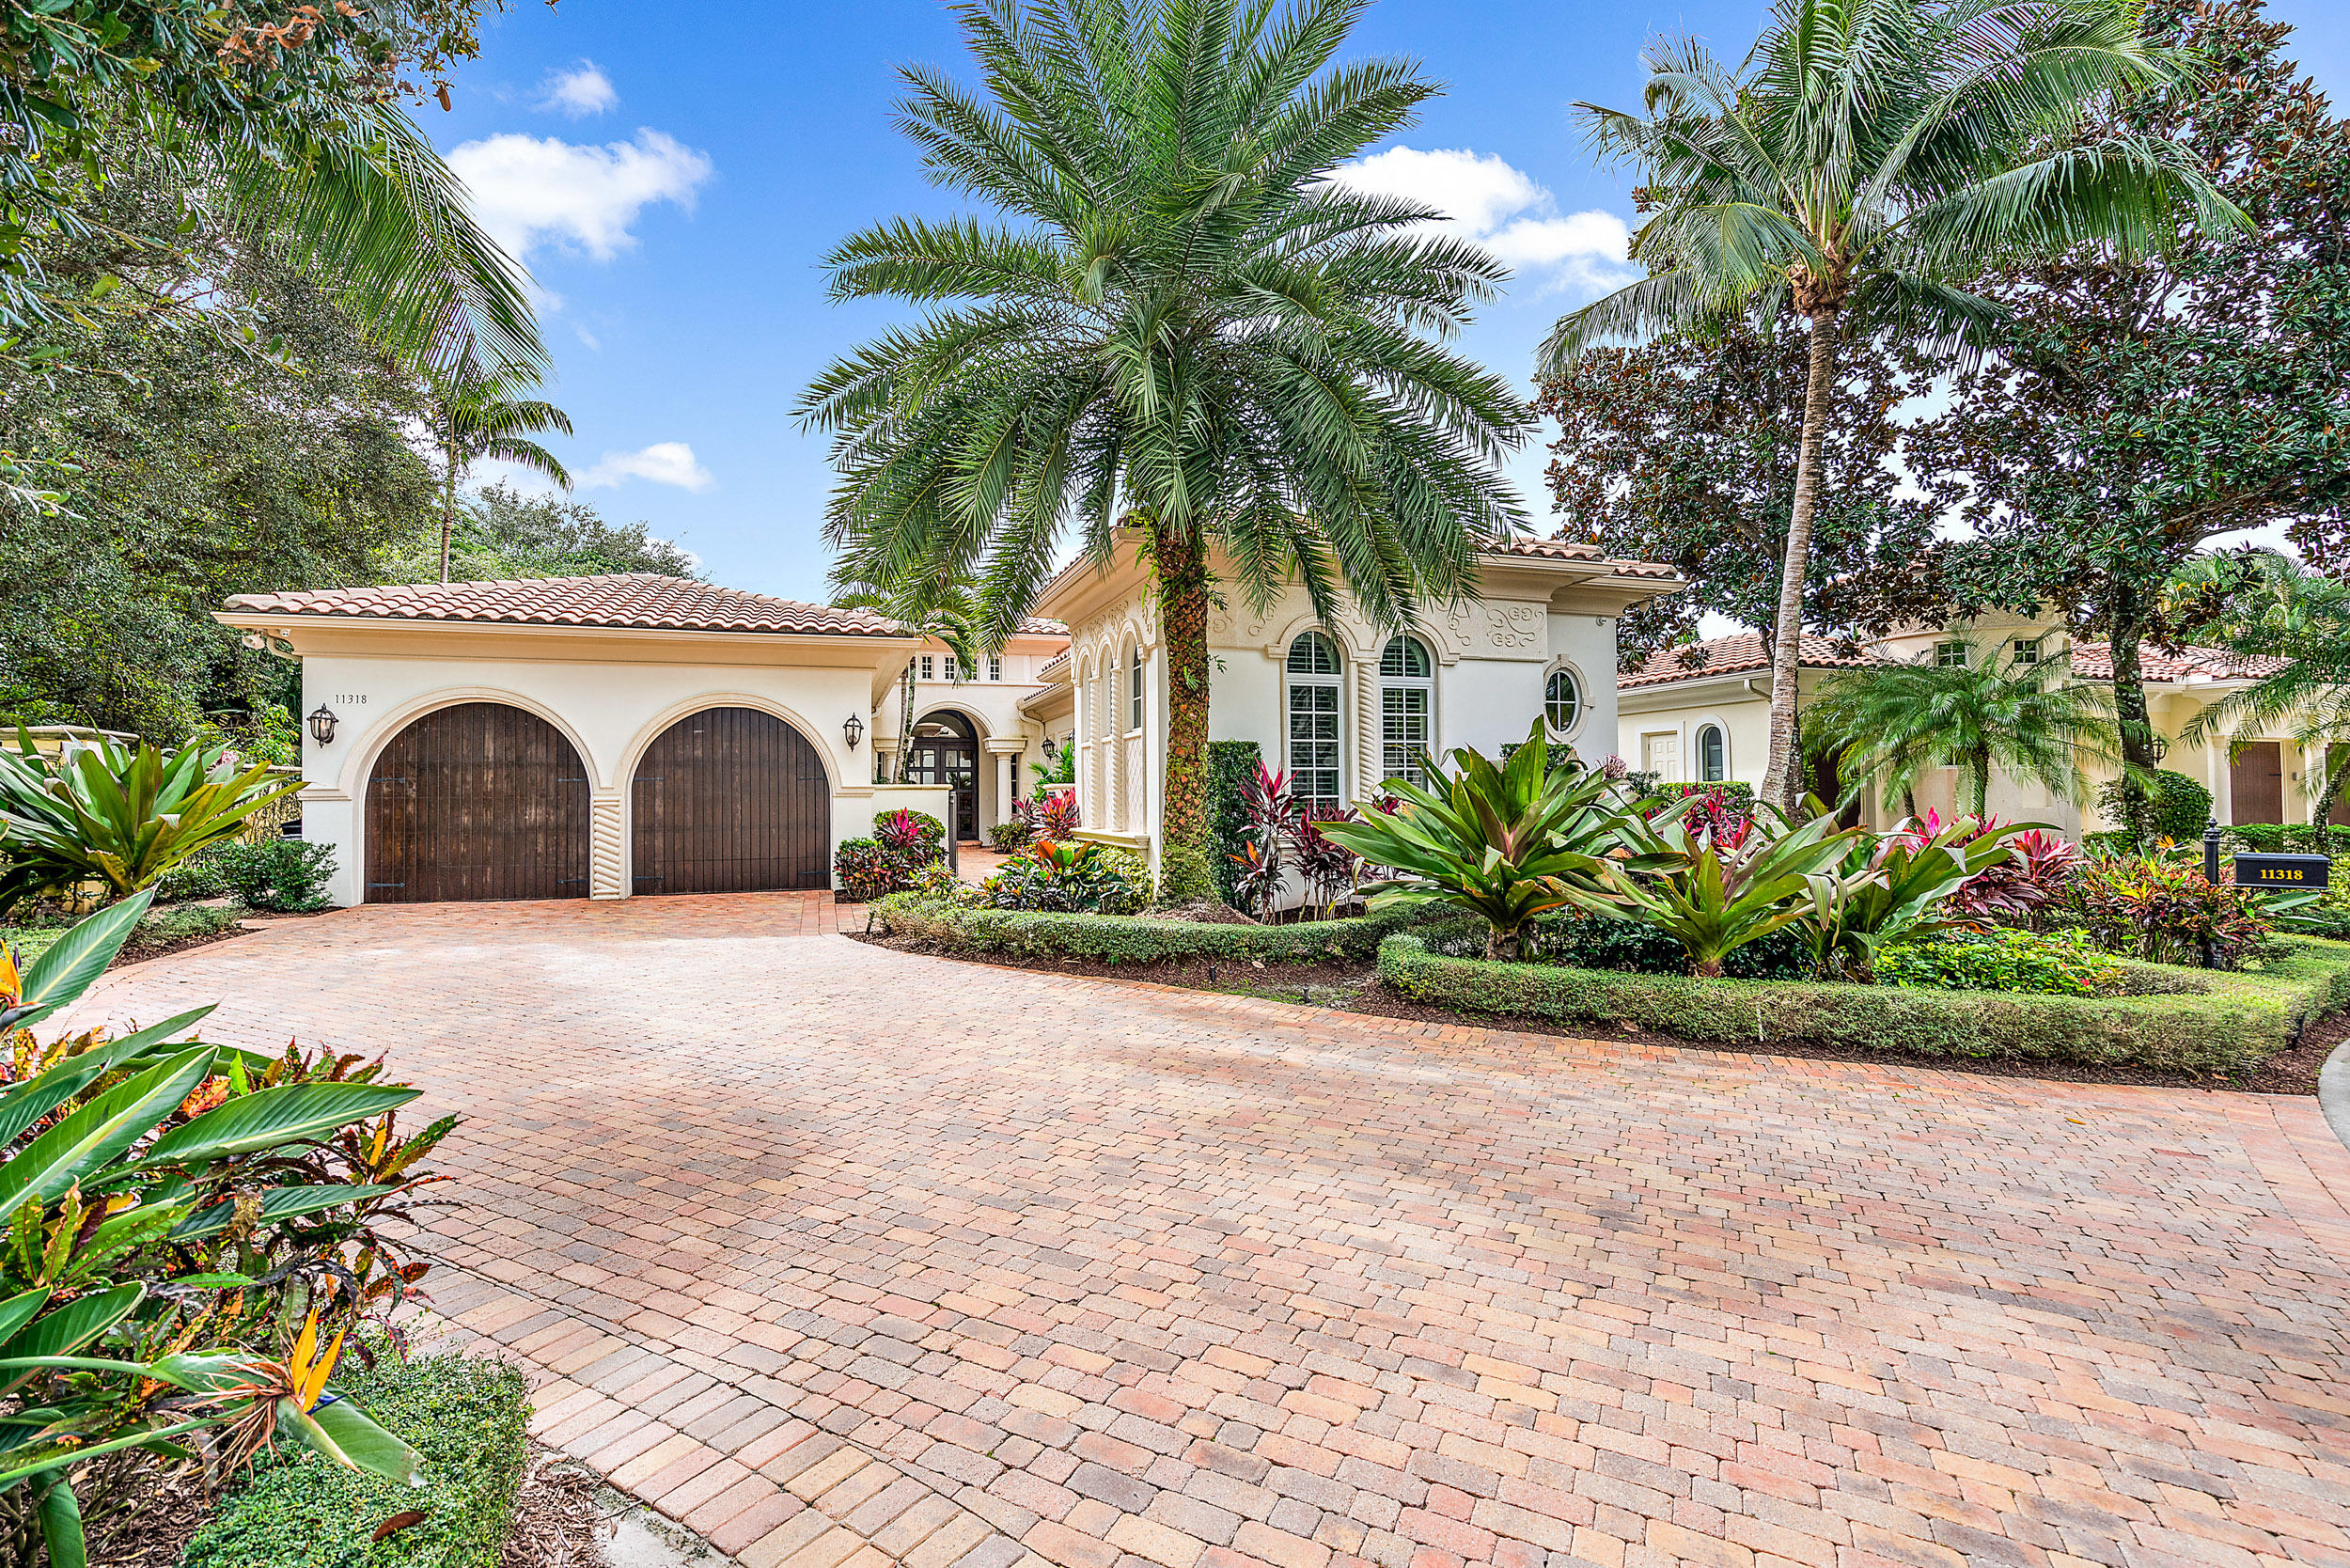 11318 Caladium Lane, Palm Beach Gardens, Florida 33418, 4 Bedrooms Bedrooms, ,5.2 BathroomsBathrooms,A,Single family,Caladium,RX-10670330